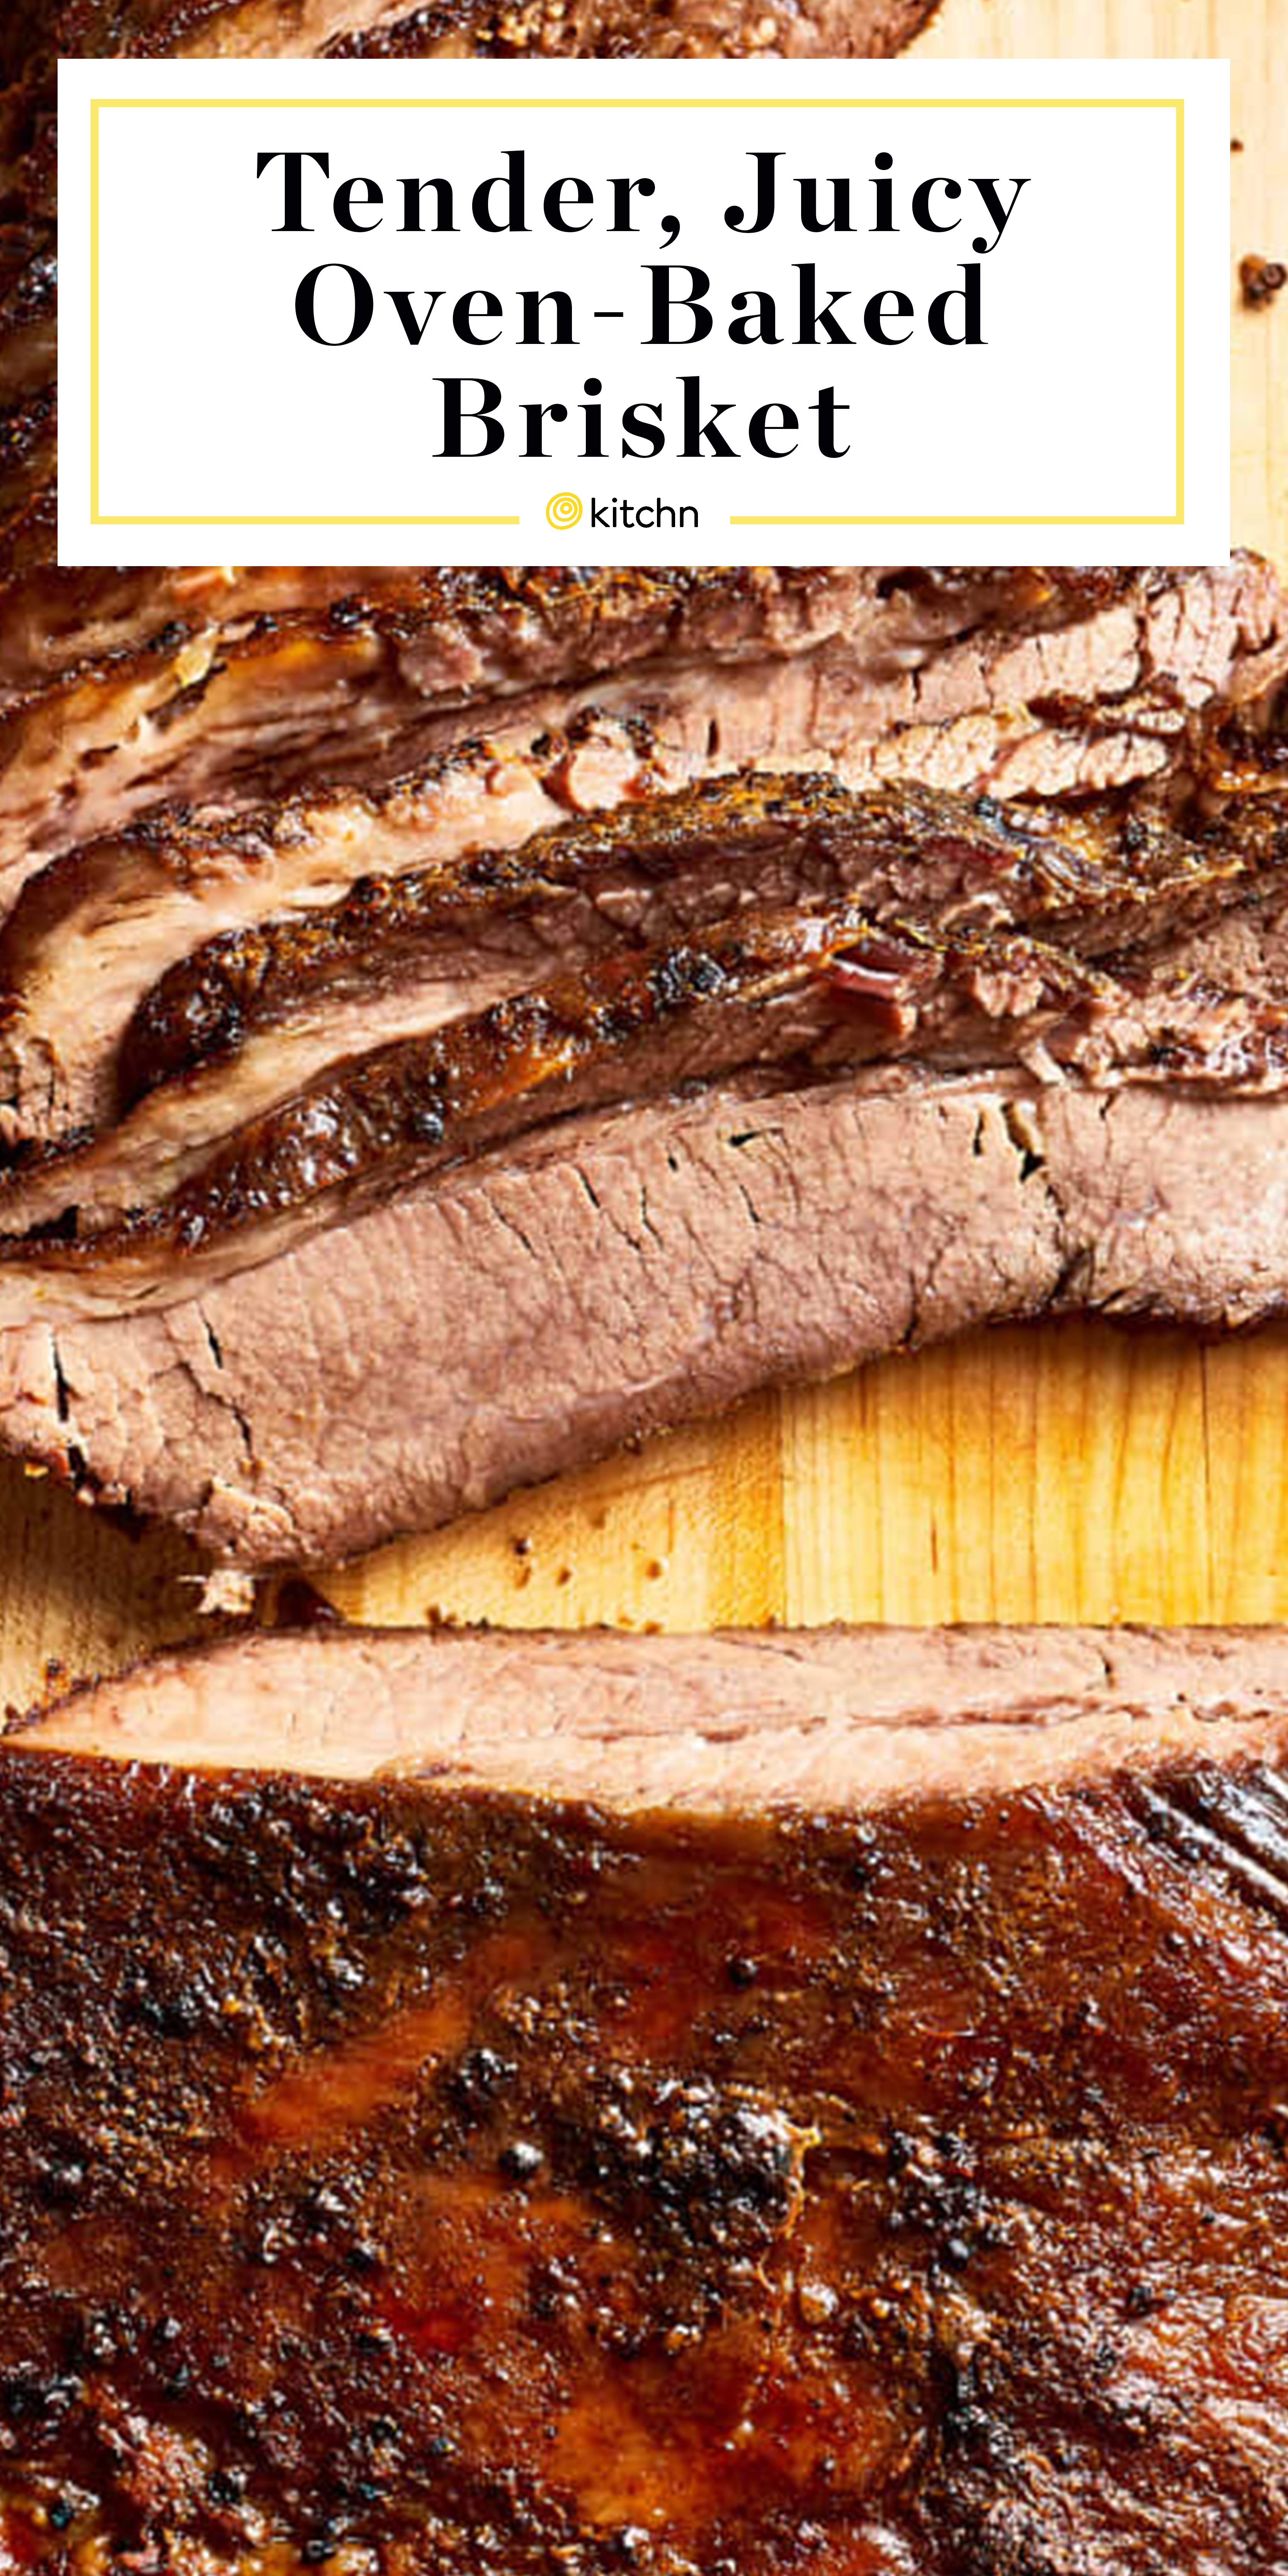 How To Cook Texas Style Brisket In The Oven Kitchn